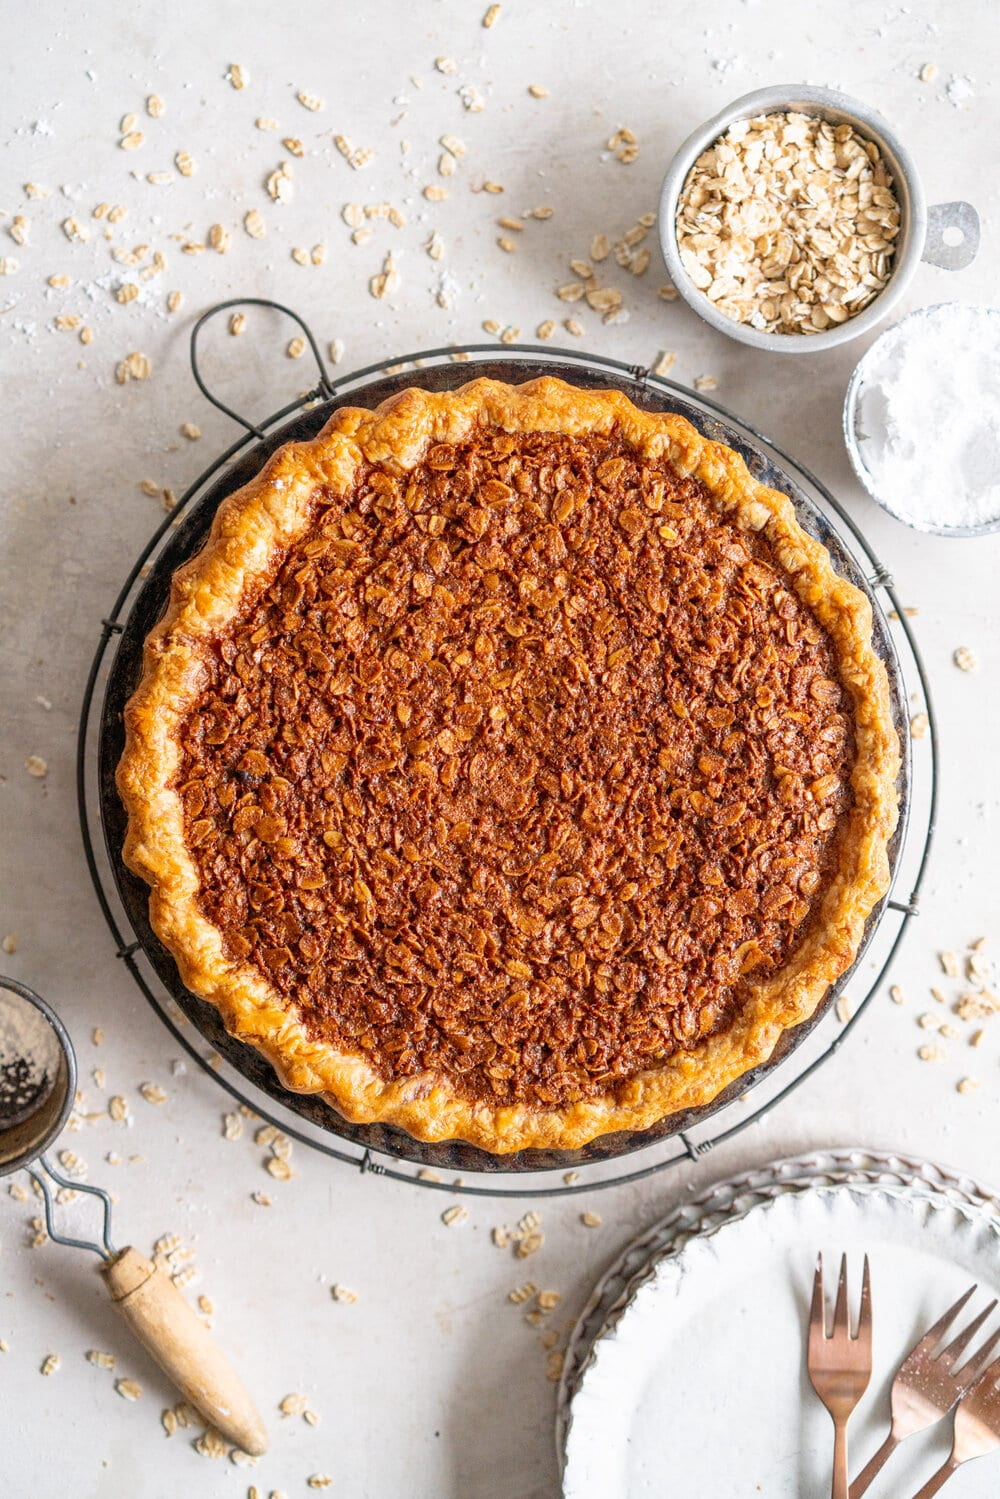 Brown Butter Oatmeal Pie - this is a pecan pie but without the pecans, which makes it the perfect pie for those who can't have nuts but still want the pecan pie experience. Toasted oats are mixed with brown butter and golden syrup for a chewy, perfect pie.